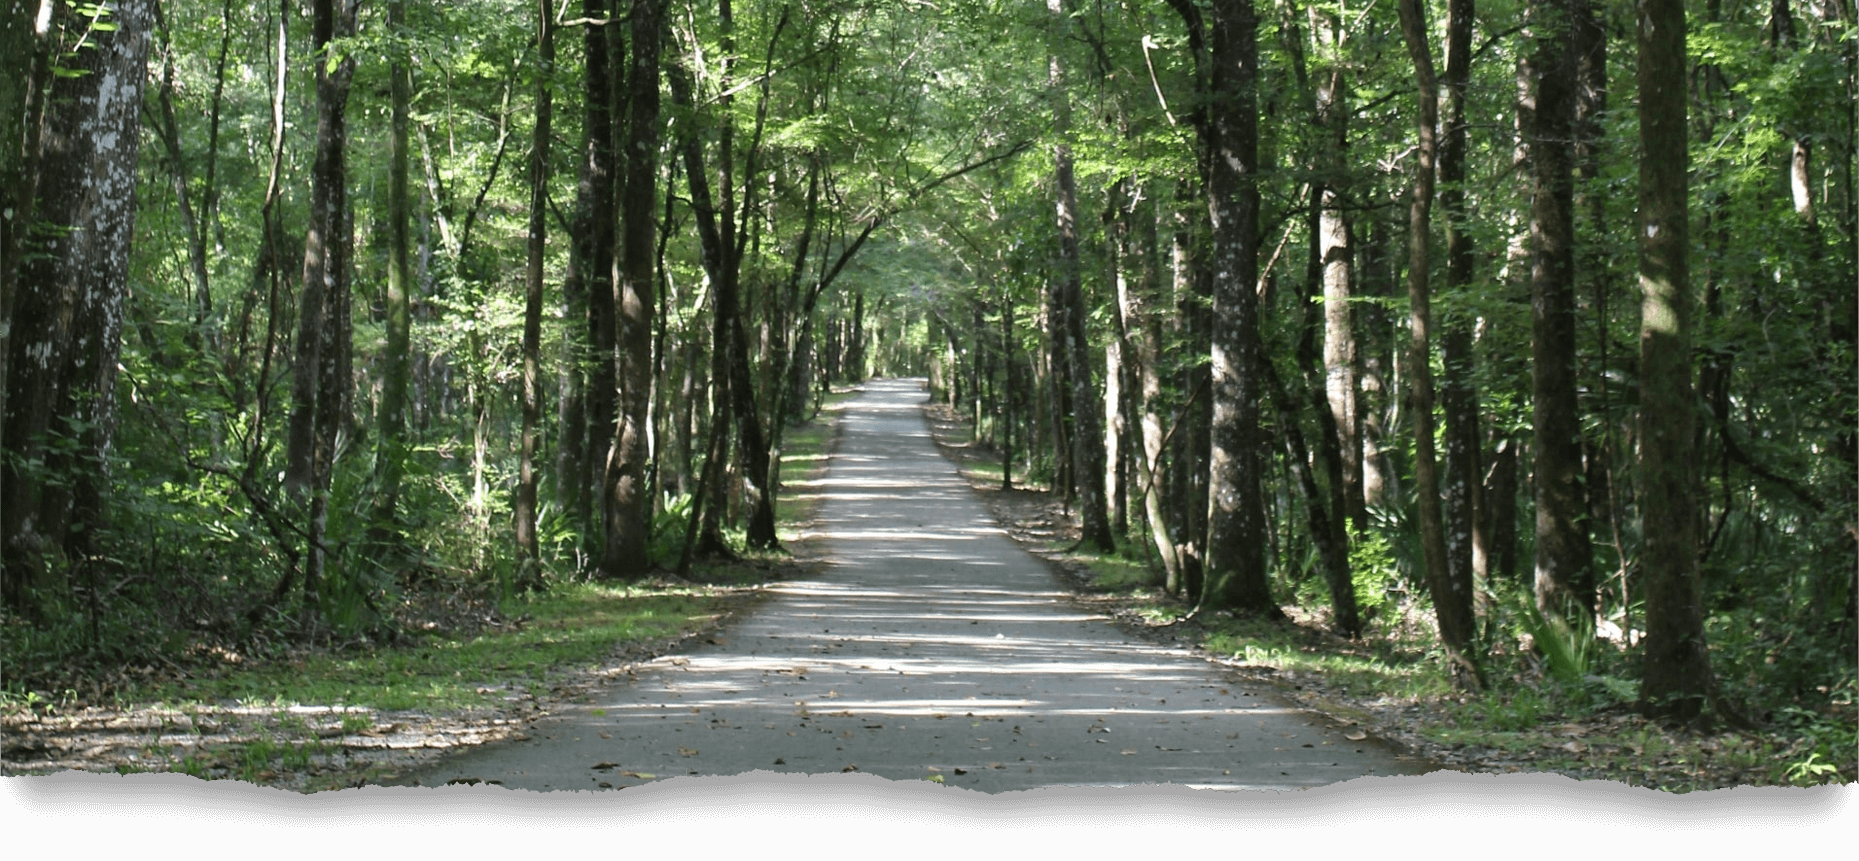 Forest path in Clay County